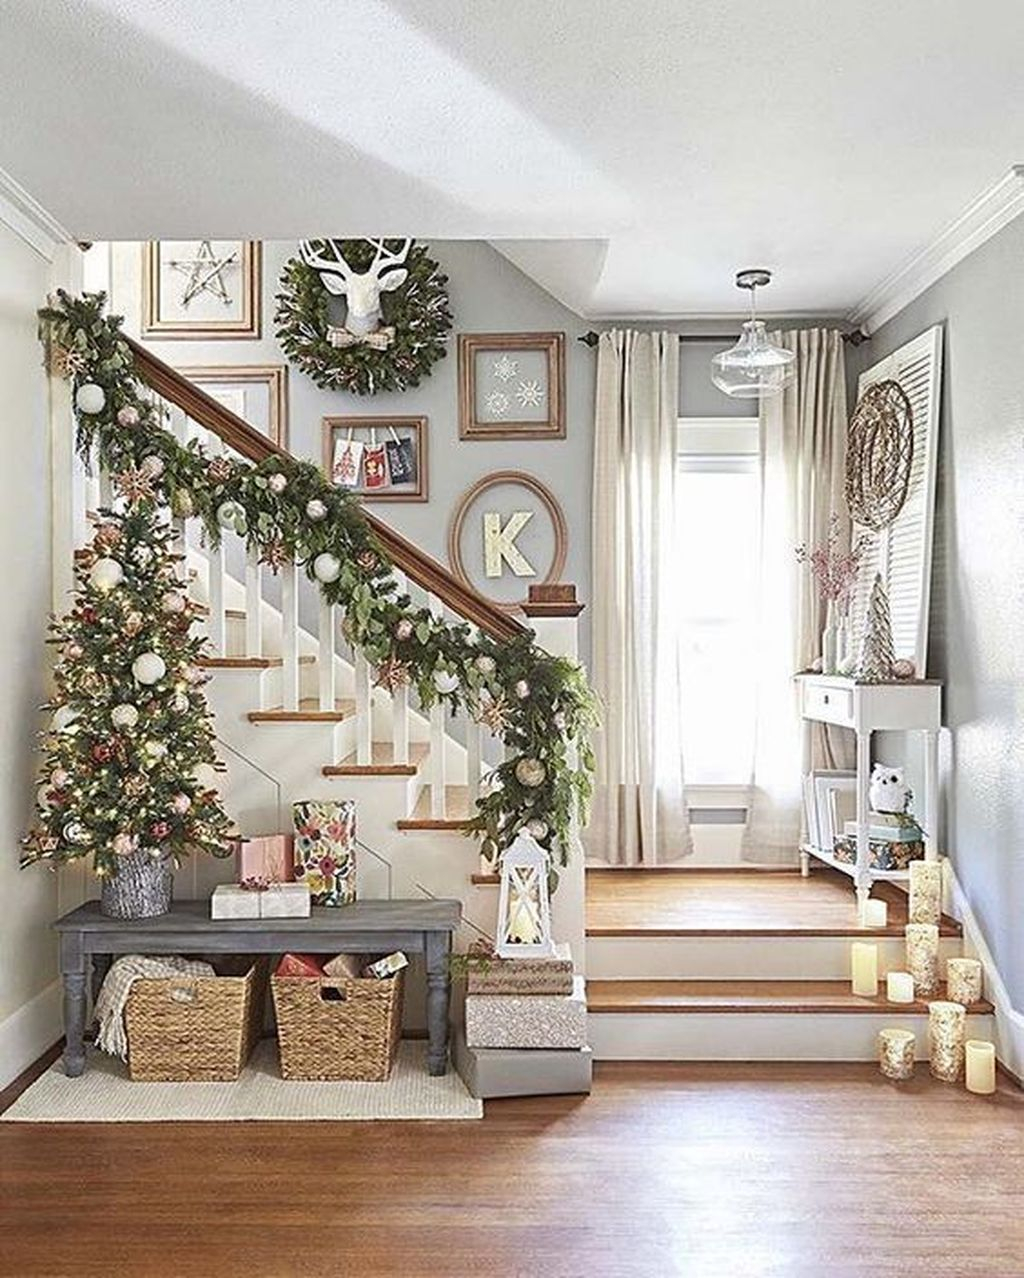 Easy Home Decor Ideas: 38 Simple Home Decor Ideas For Christmas